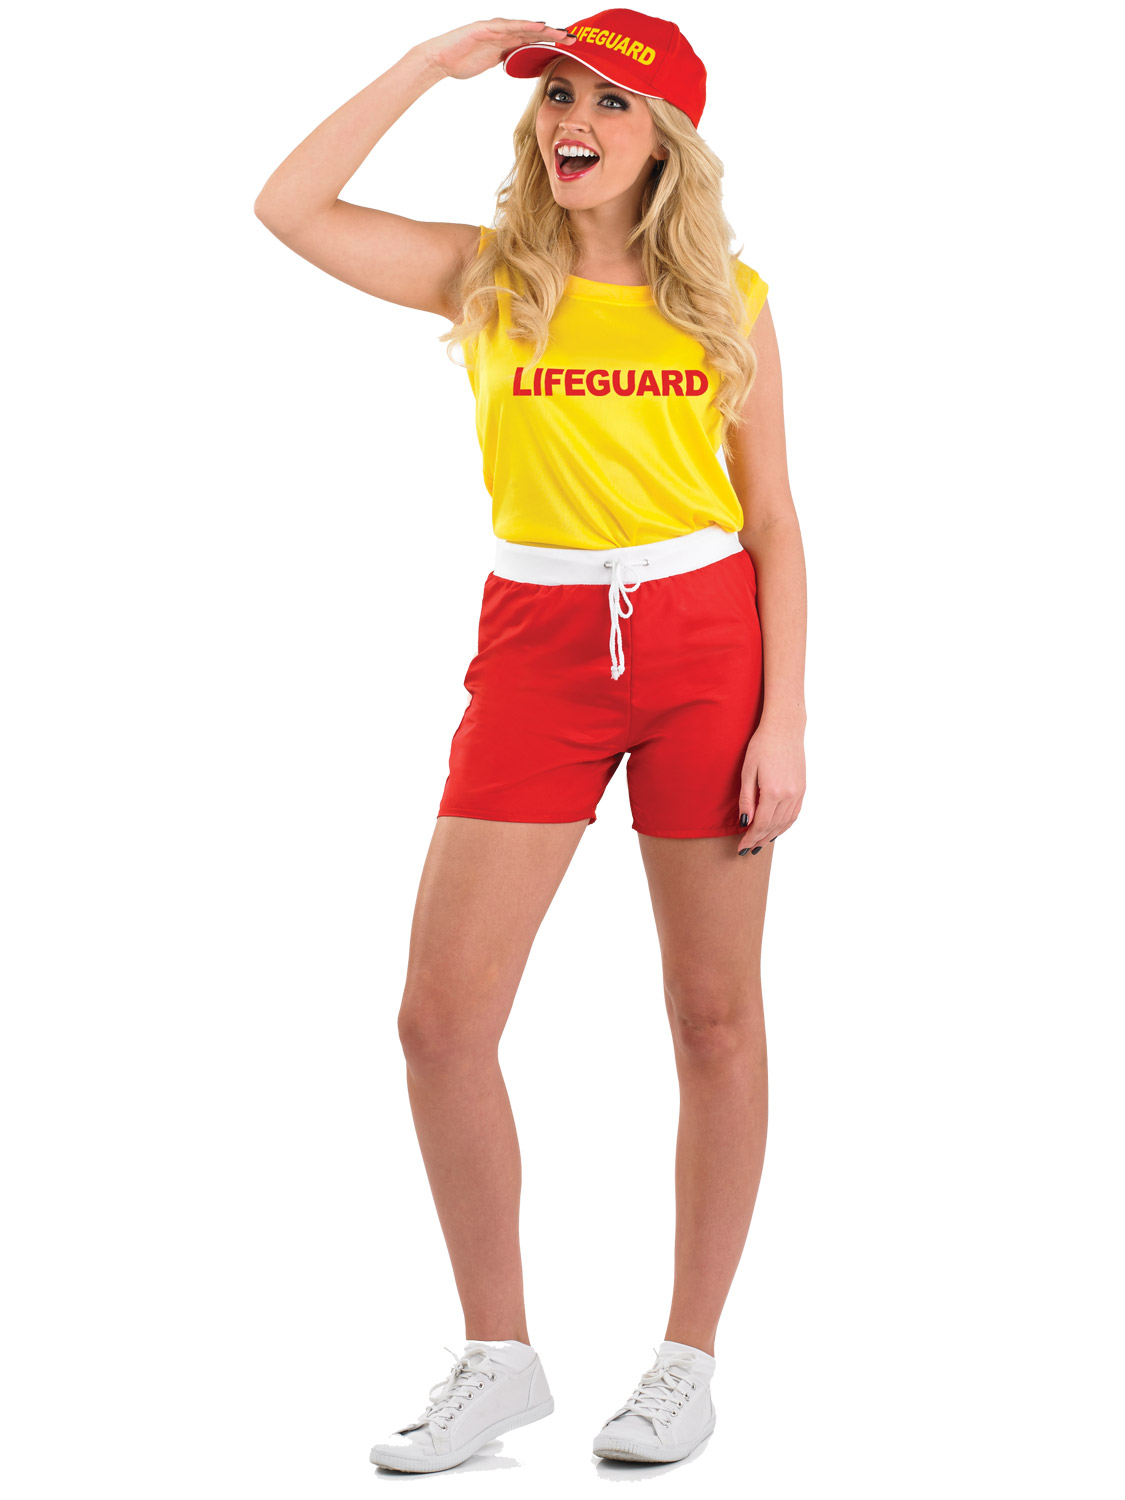 abbcfd24e2a1 Ladies Lifeguard Costume